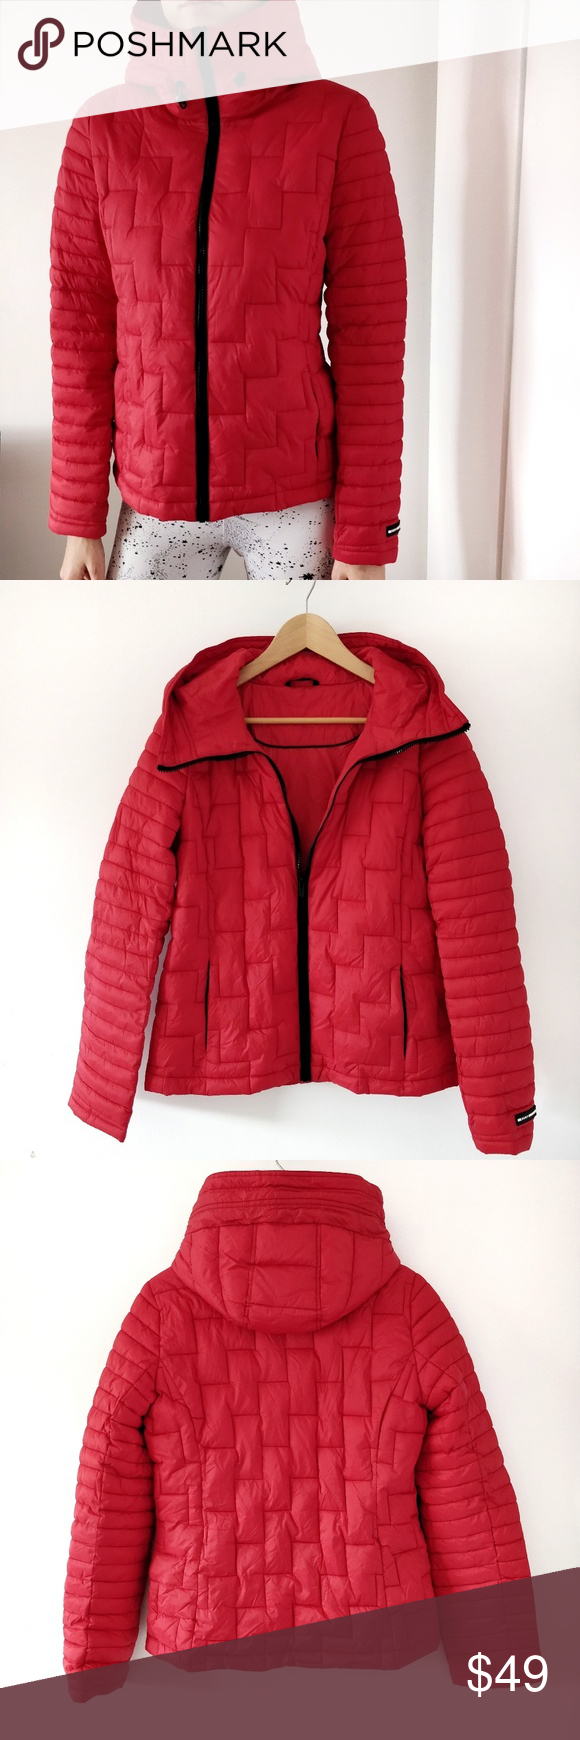 Nwt Dkny Quilted Lightweight Red Puffer Jacket S Lightweight Outerwear Puffer Jacket In Size Small Approx Length Red Puffer Jacket Clothes Design Fashion [ 1740 x 580 Pixel ]